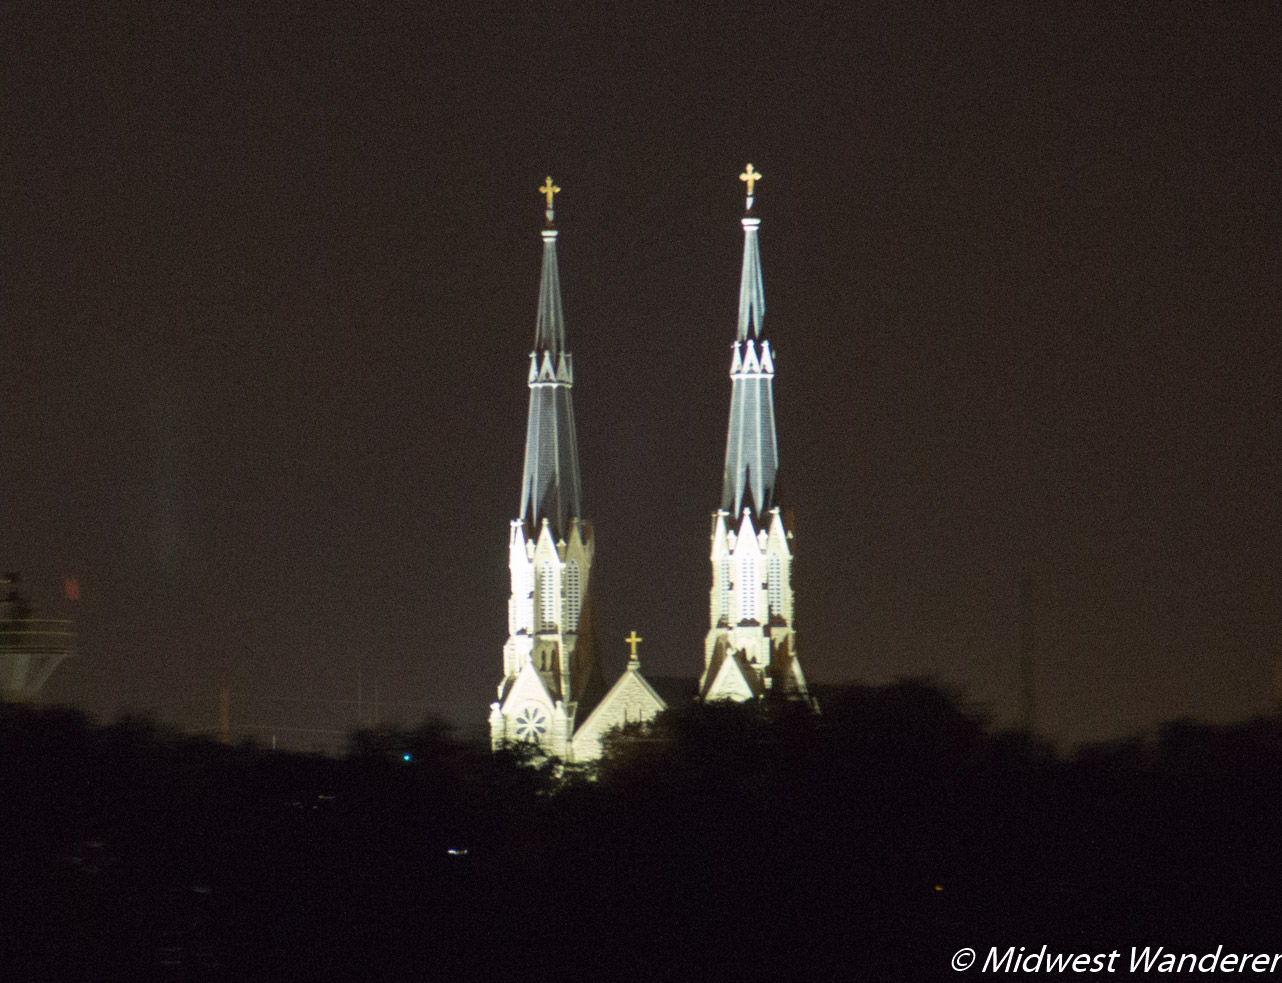 Cathedral of St Mary from the Spirit of Peoria